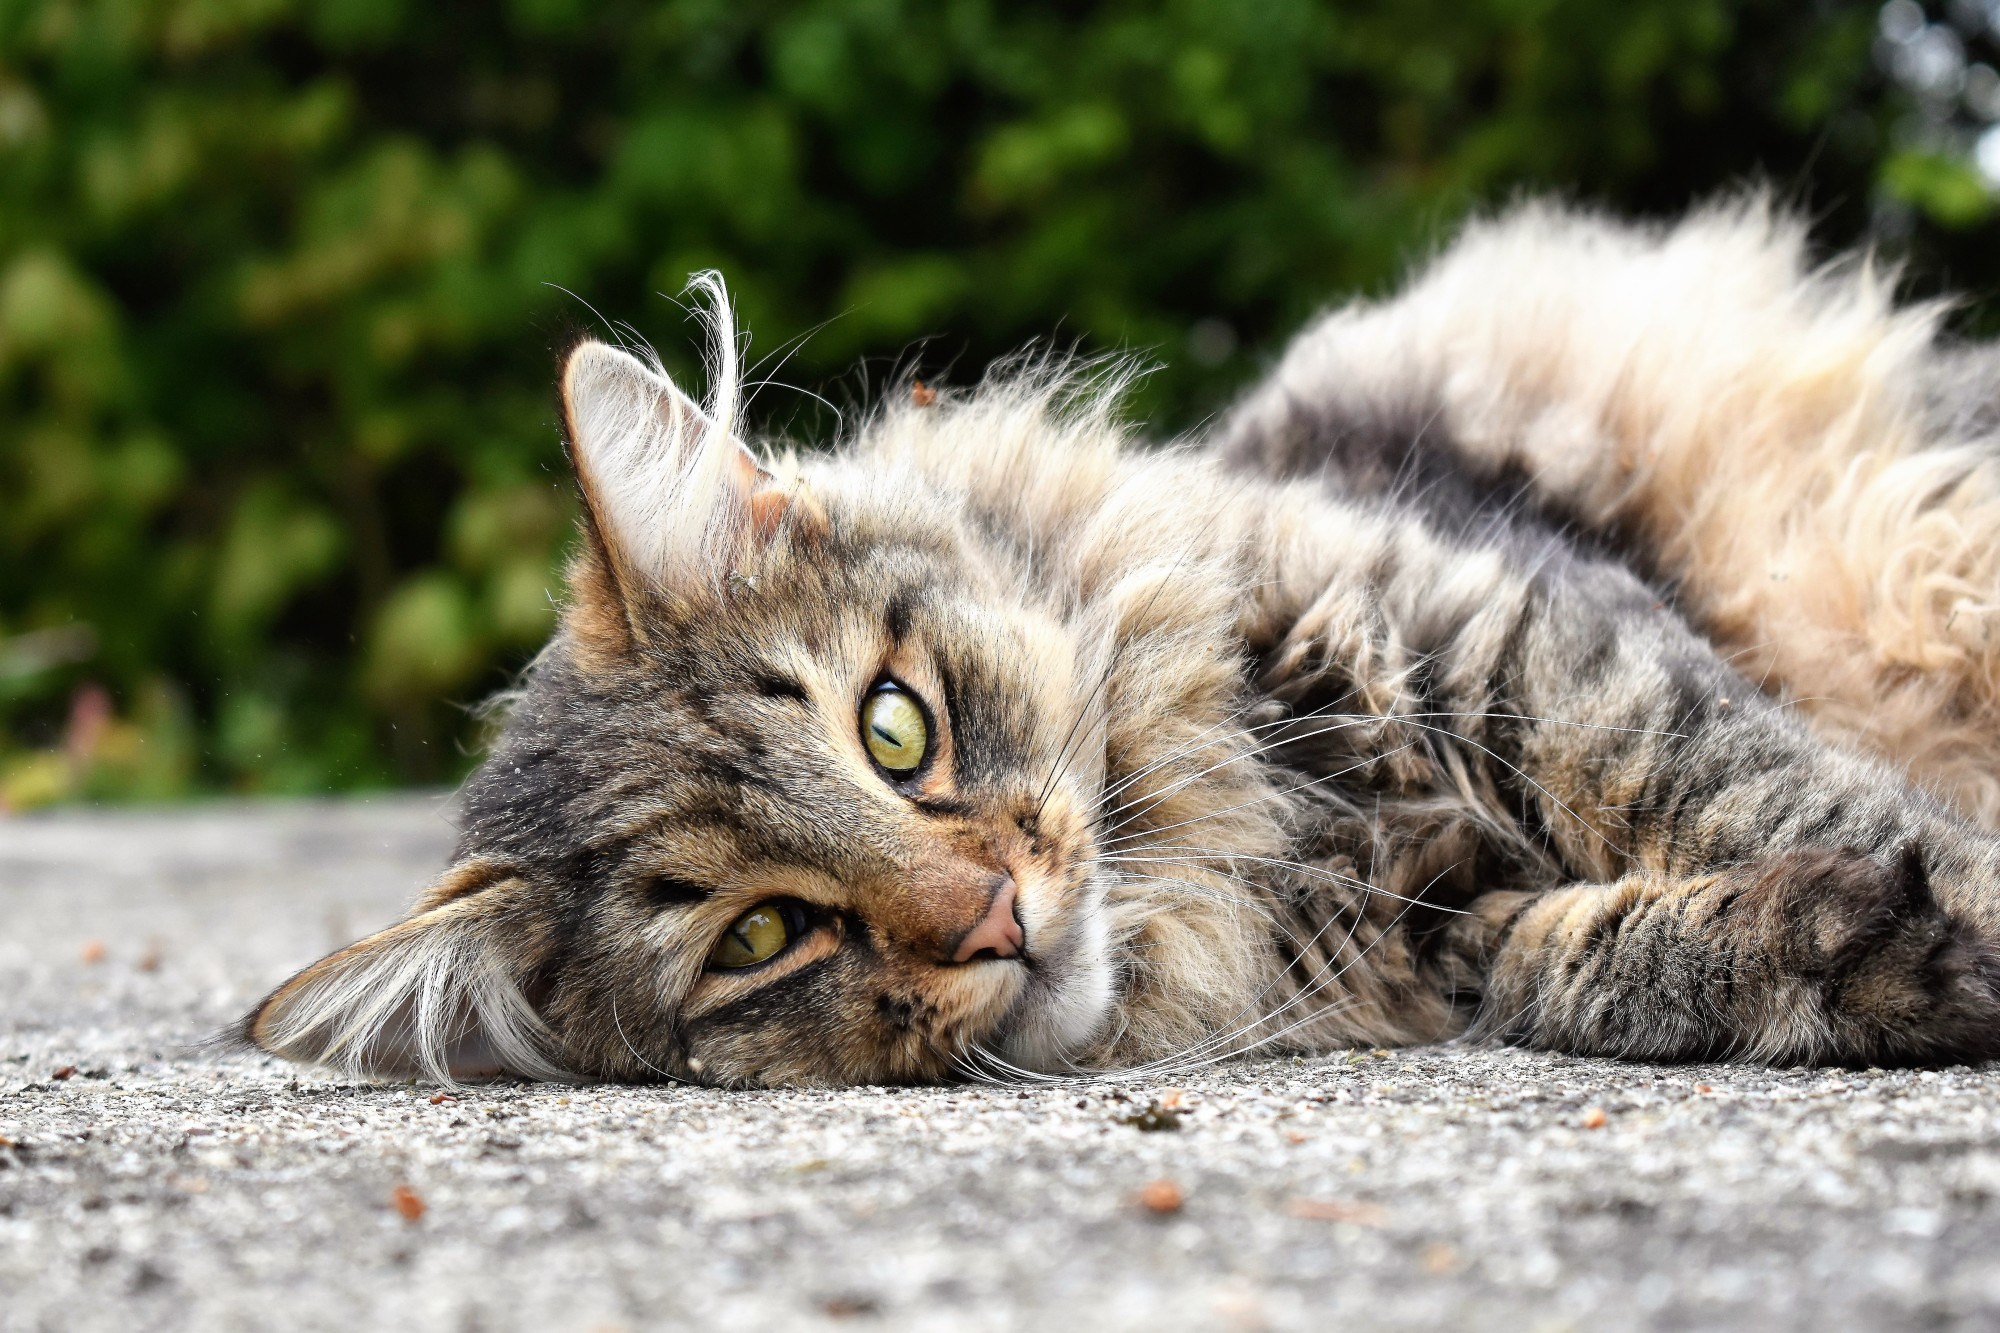 How to Groom a Long-Haired Cat: 6 Helpful Tips